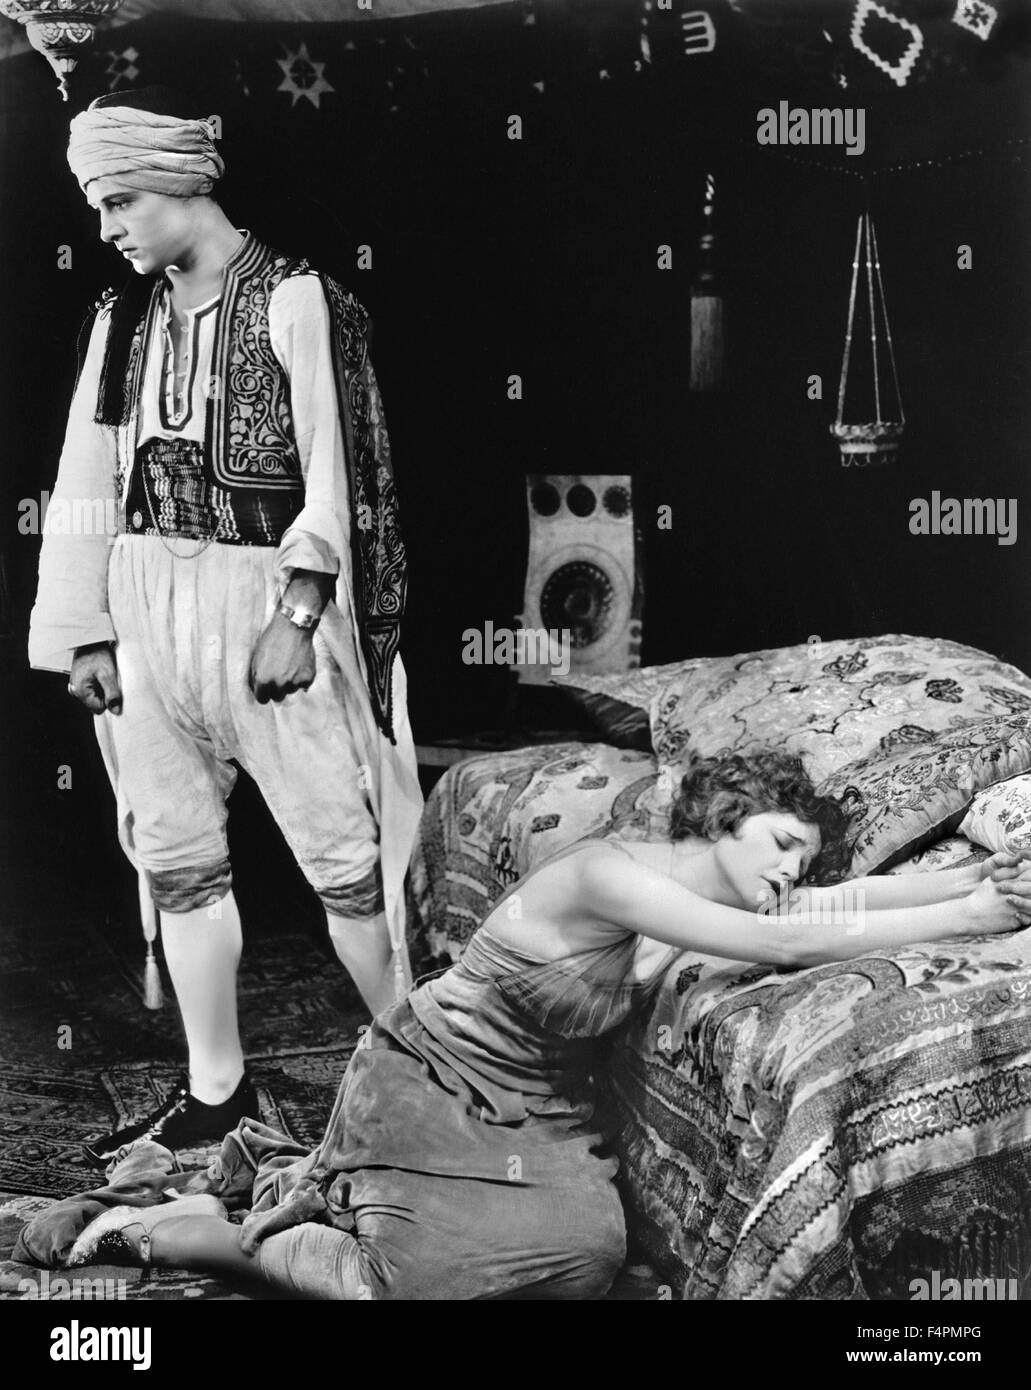 Rudolph Valentino and Vilma Banky / The Sheik / 1921 directed by George Melford [Paramount Pictures] - Stock Image